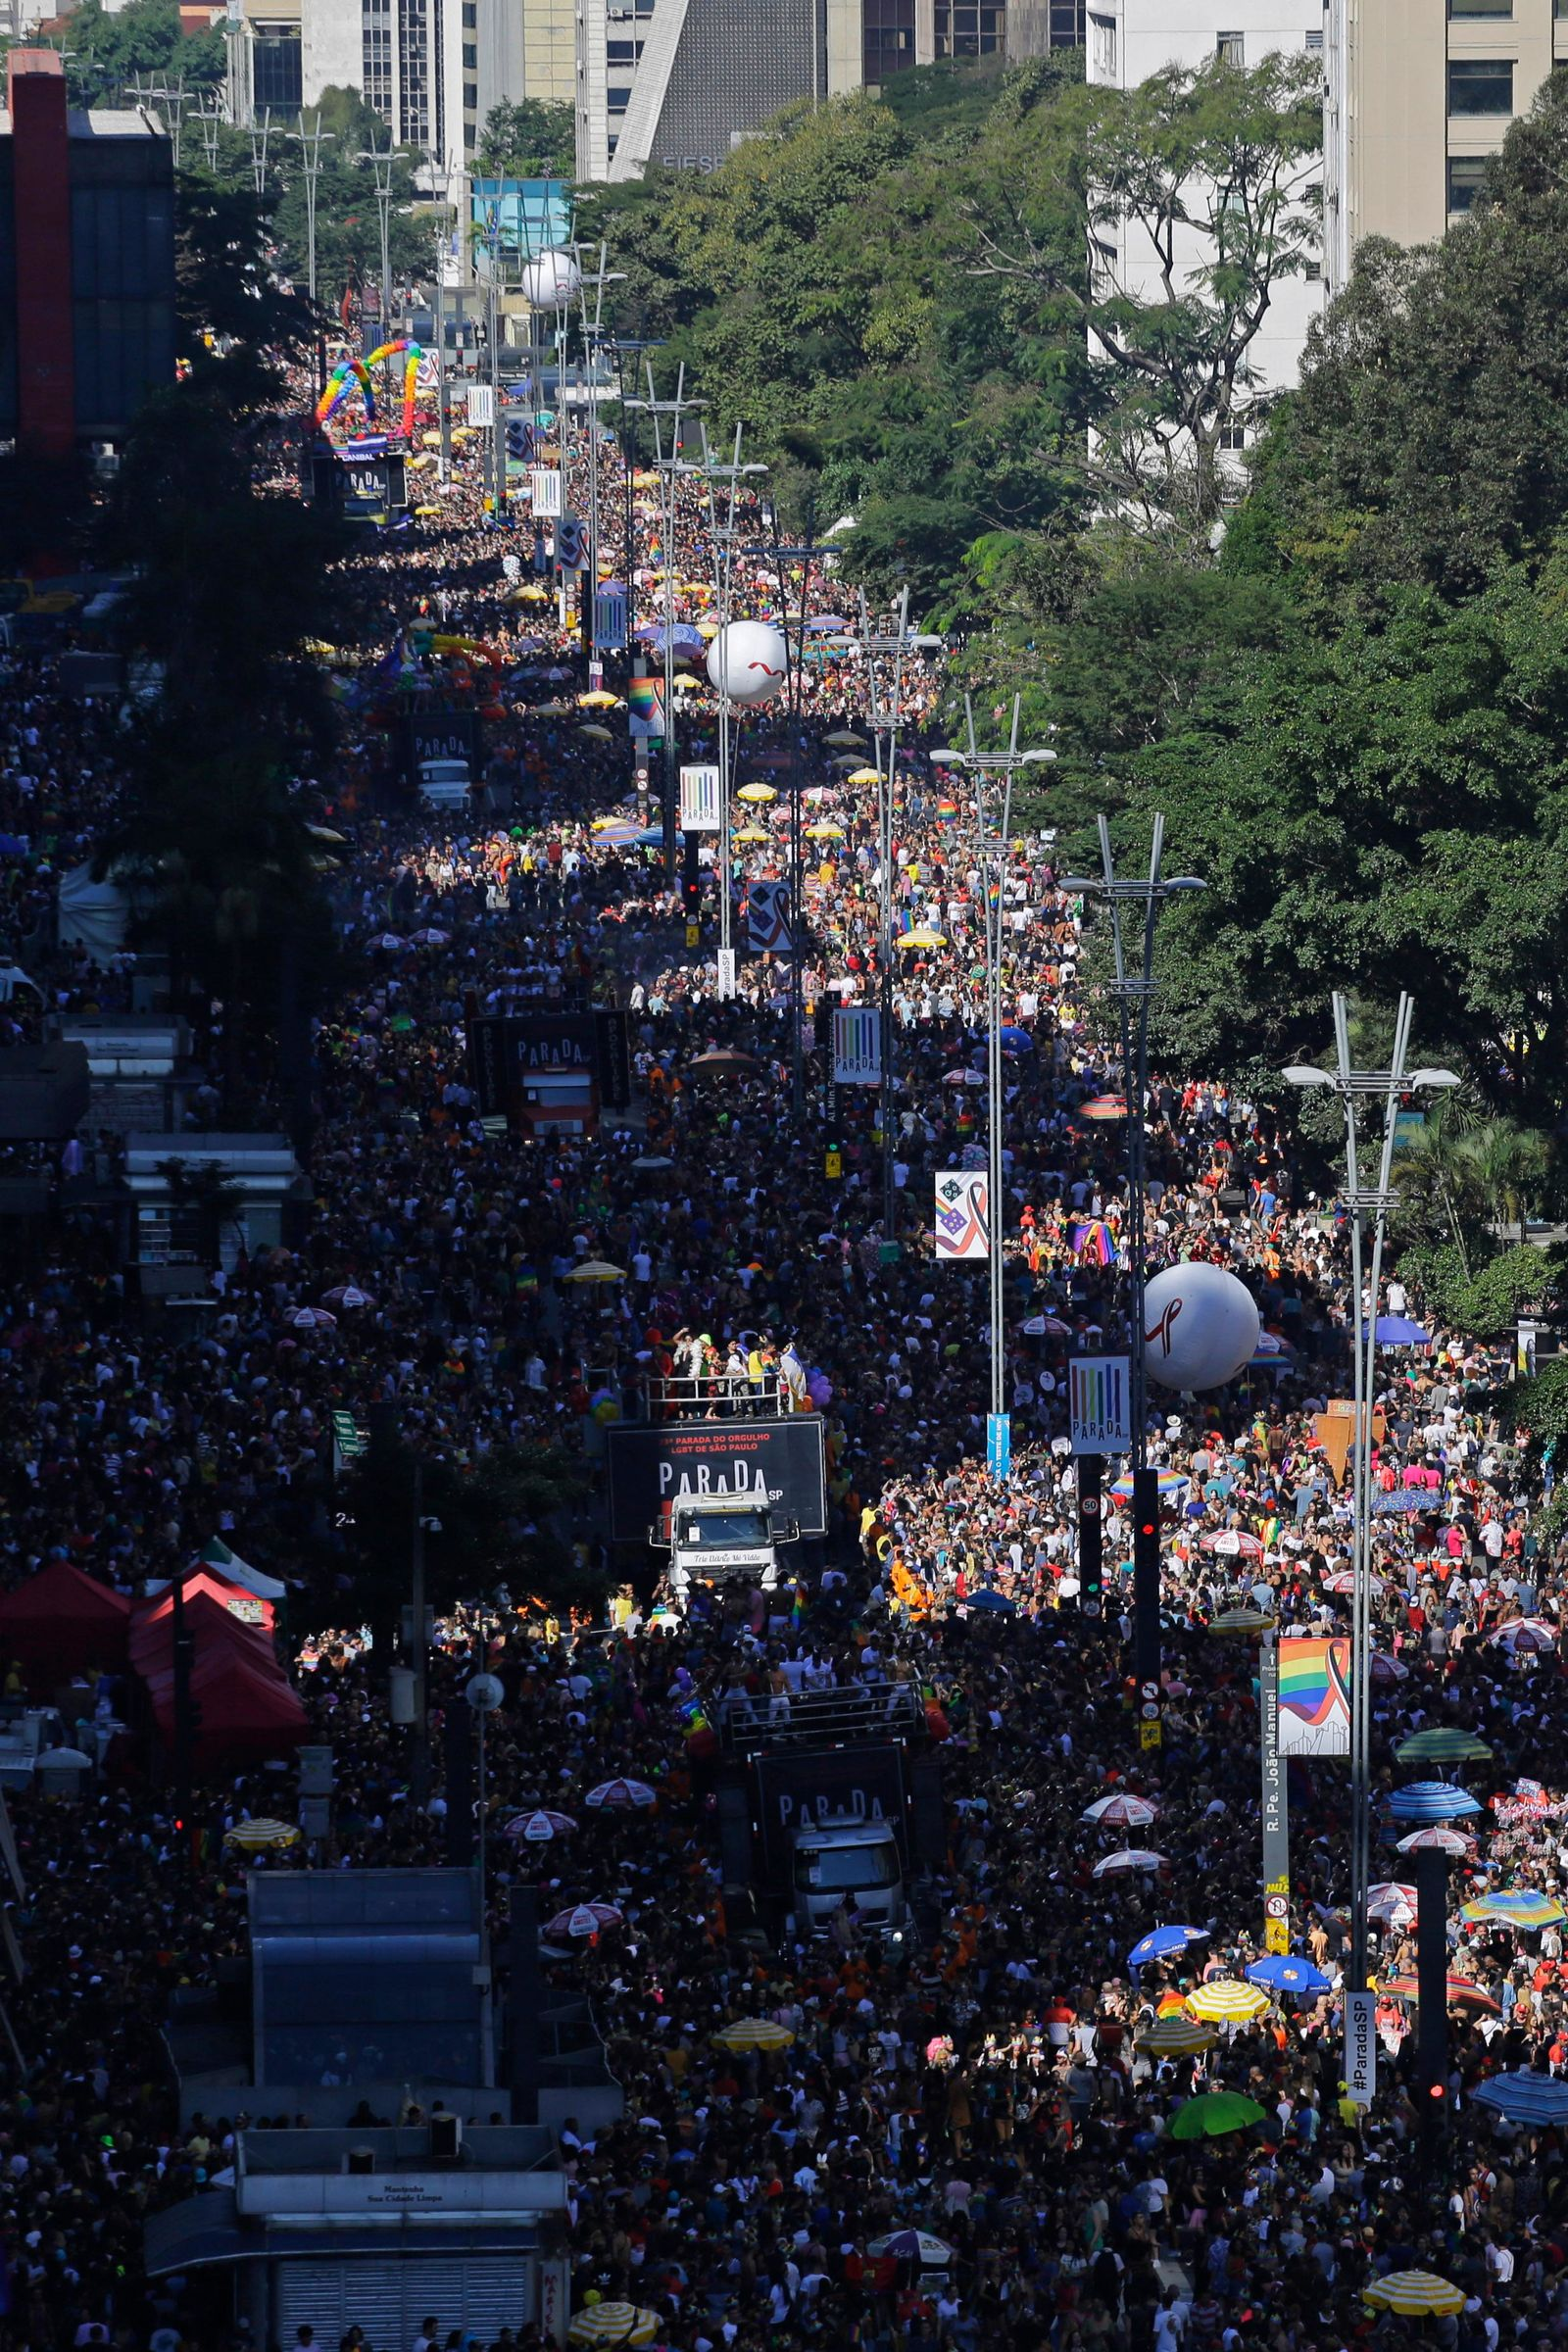 Revelers fill Paulista avenue during the annual gay pride parade in Sao Paulo, Brazil, Sunday, June 23, 2019. (AP Photo/Nelson Antoine)